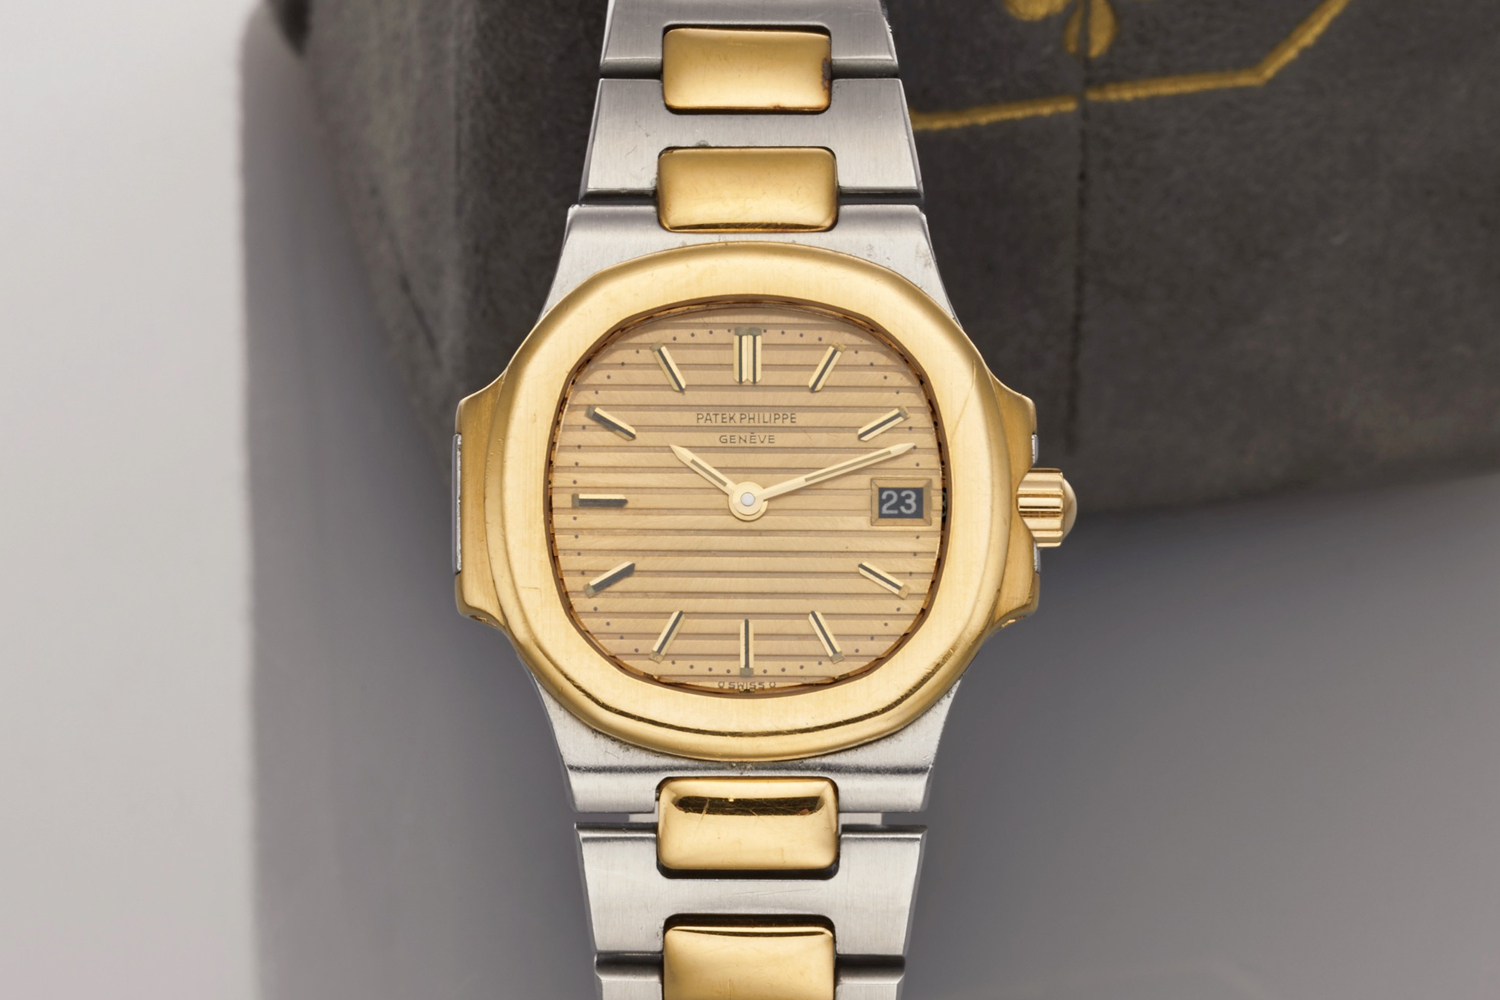 The Patek Philippe Nautilus Ref. 4700. Photo courtesy of Antiquorum.